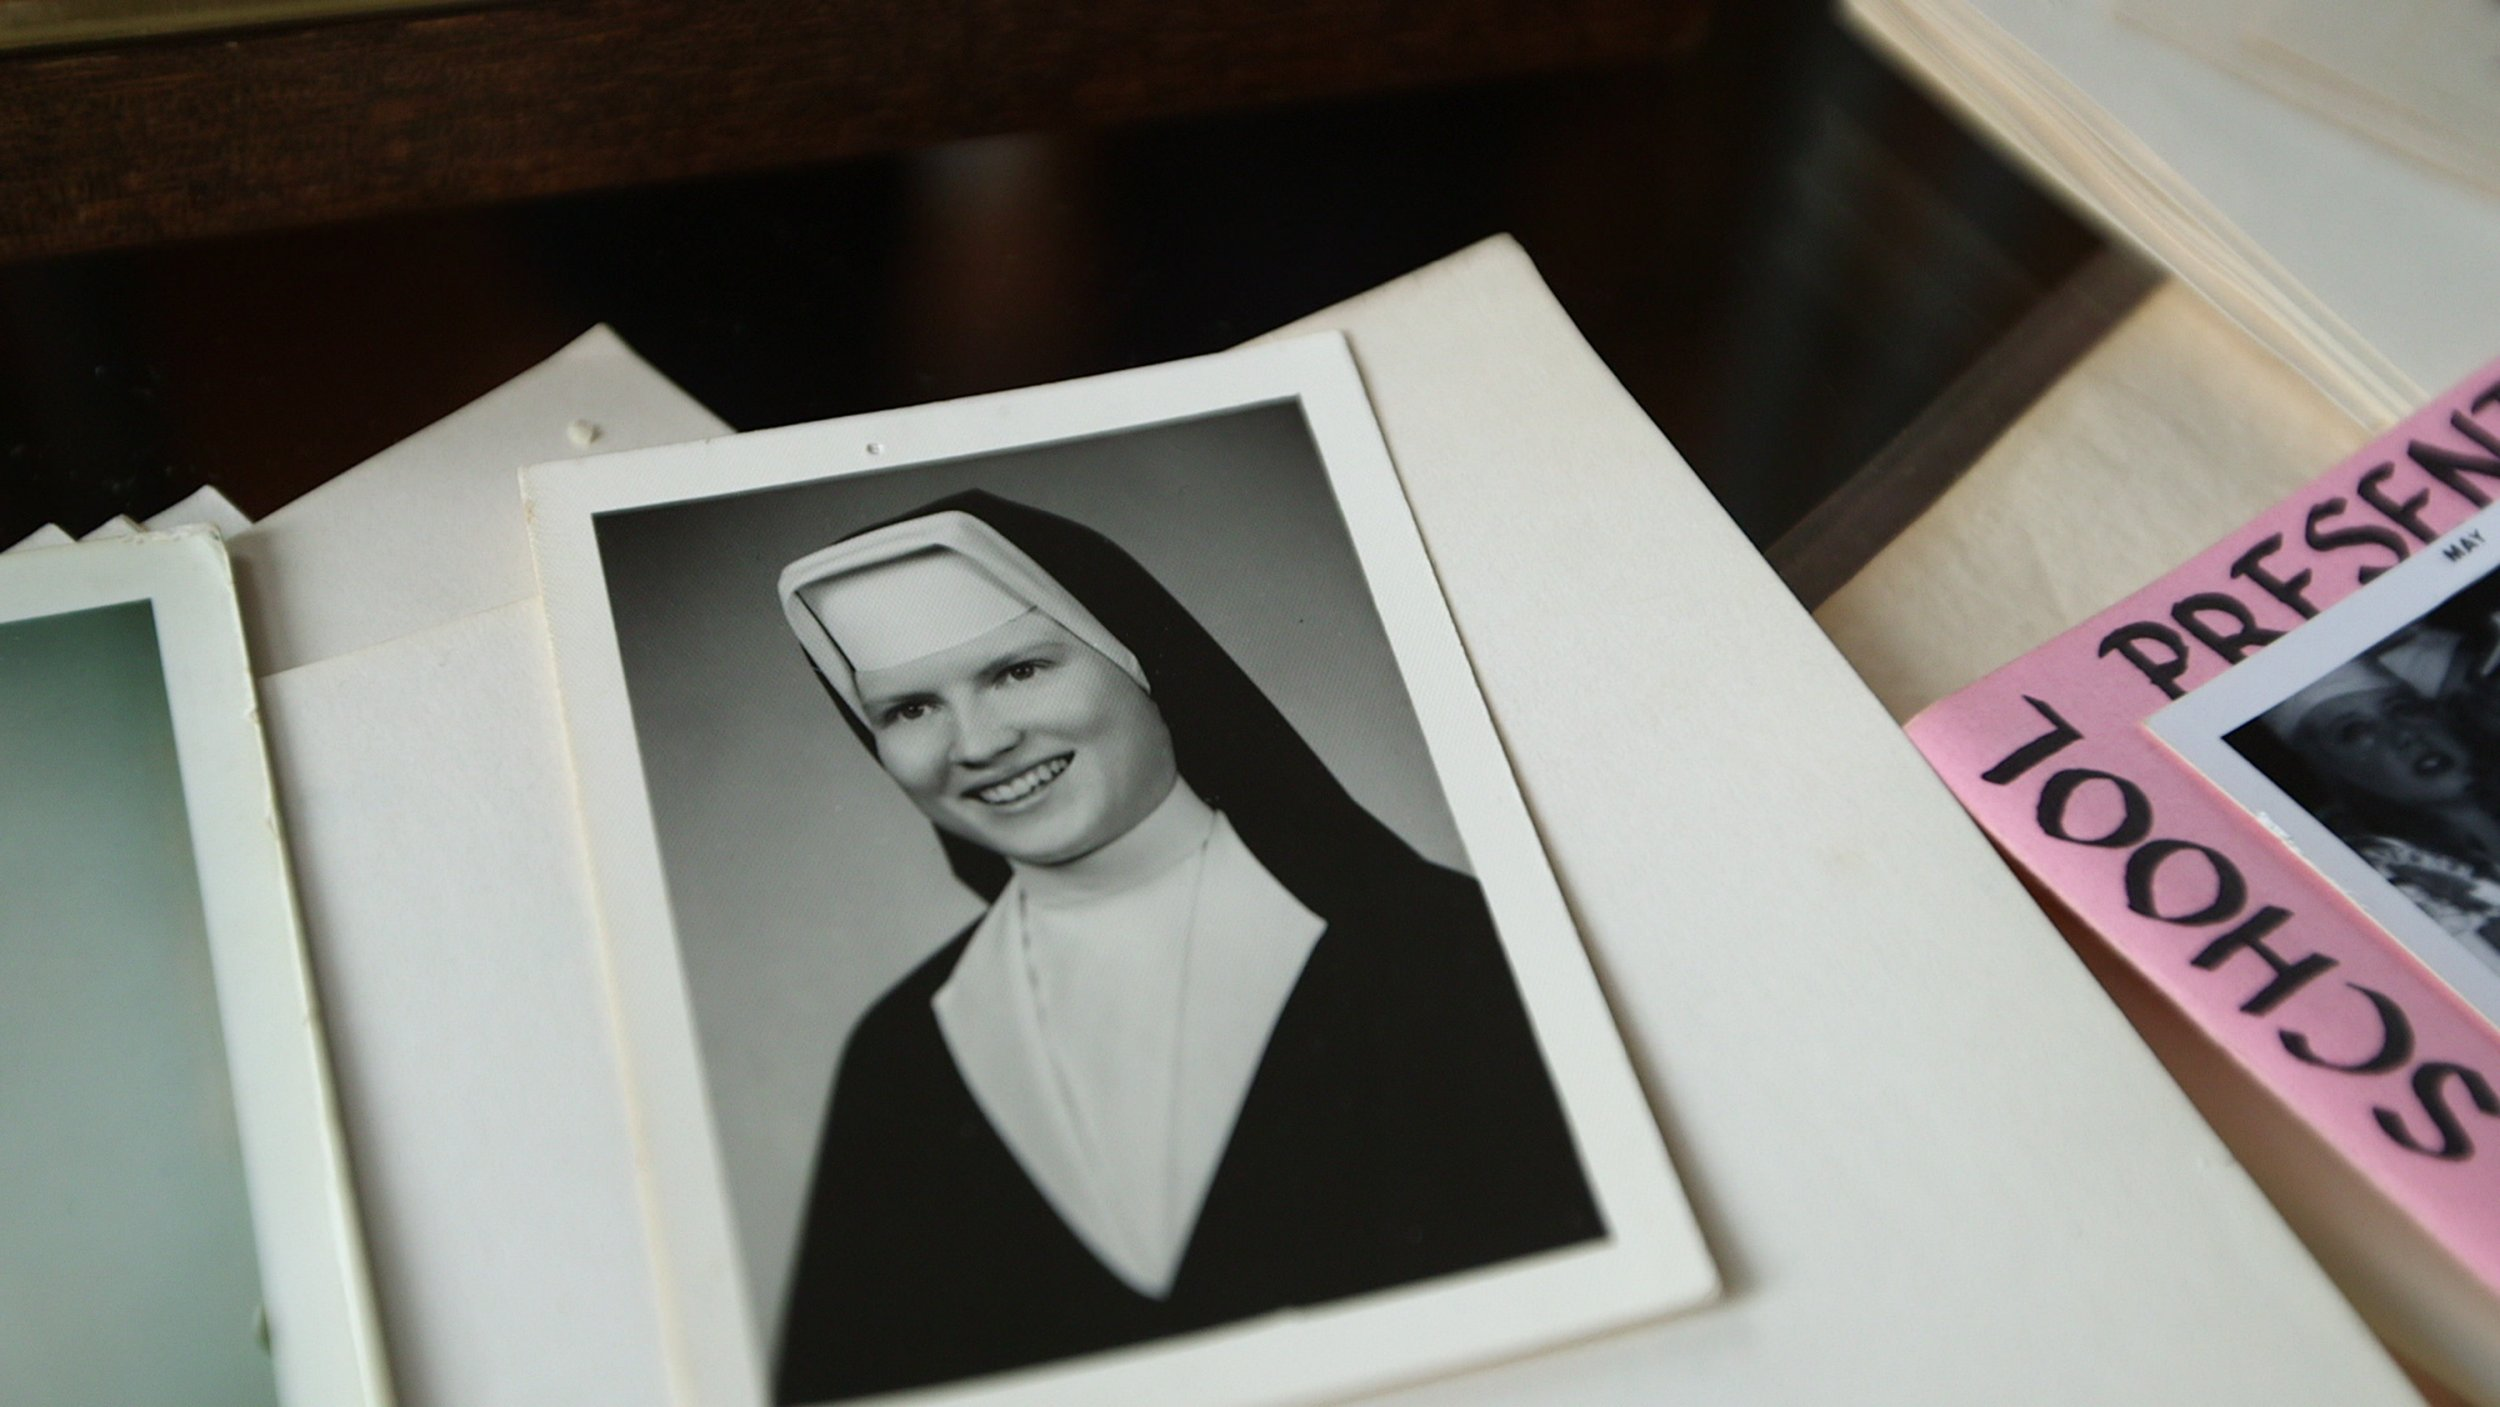 The Keepers - who killed Sister Cathy?